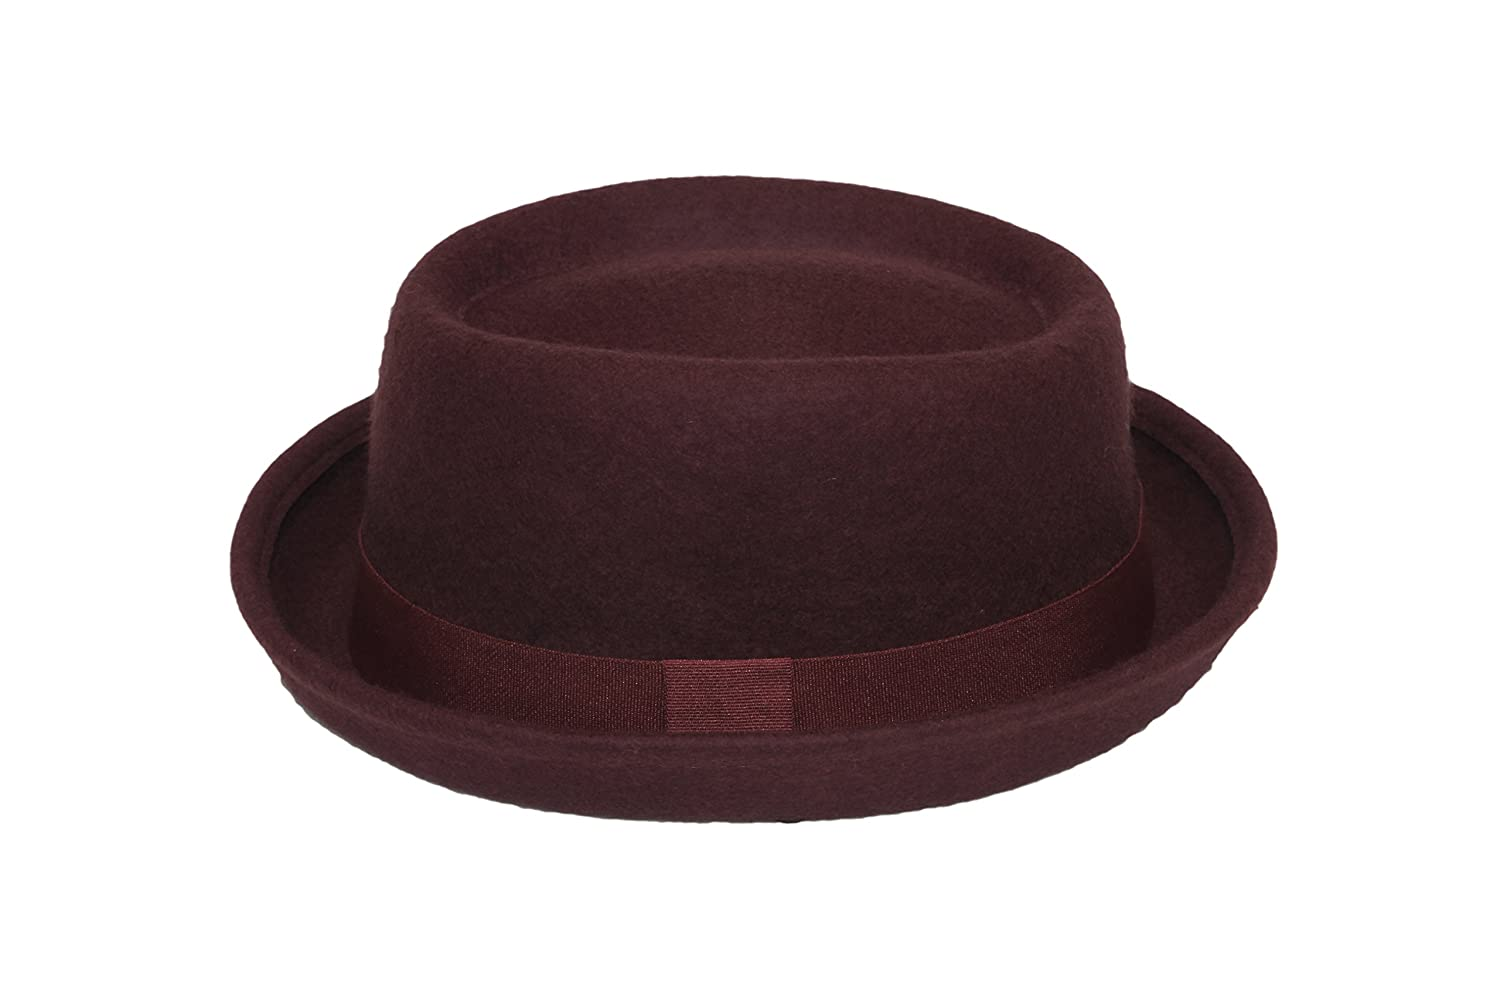 Hat Pork Pie Trilby 100% wool felt unisex band brim fedora jazz